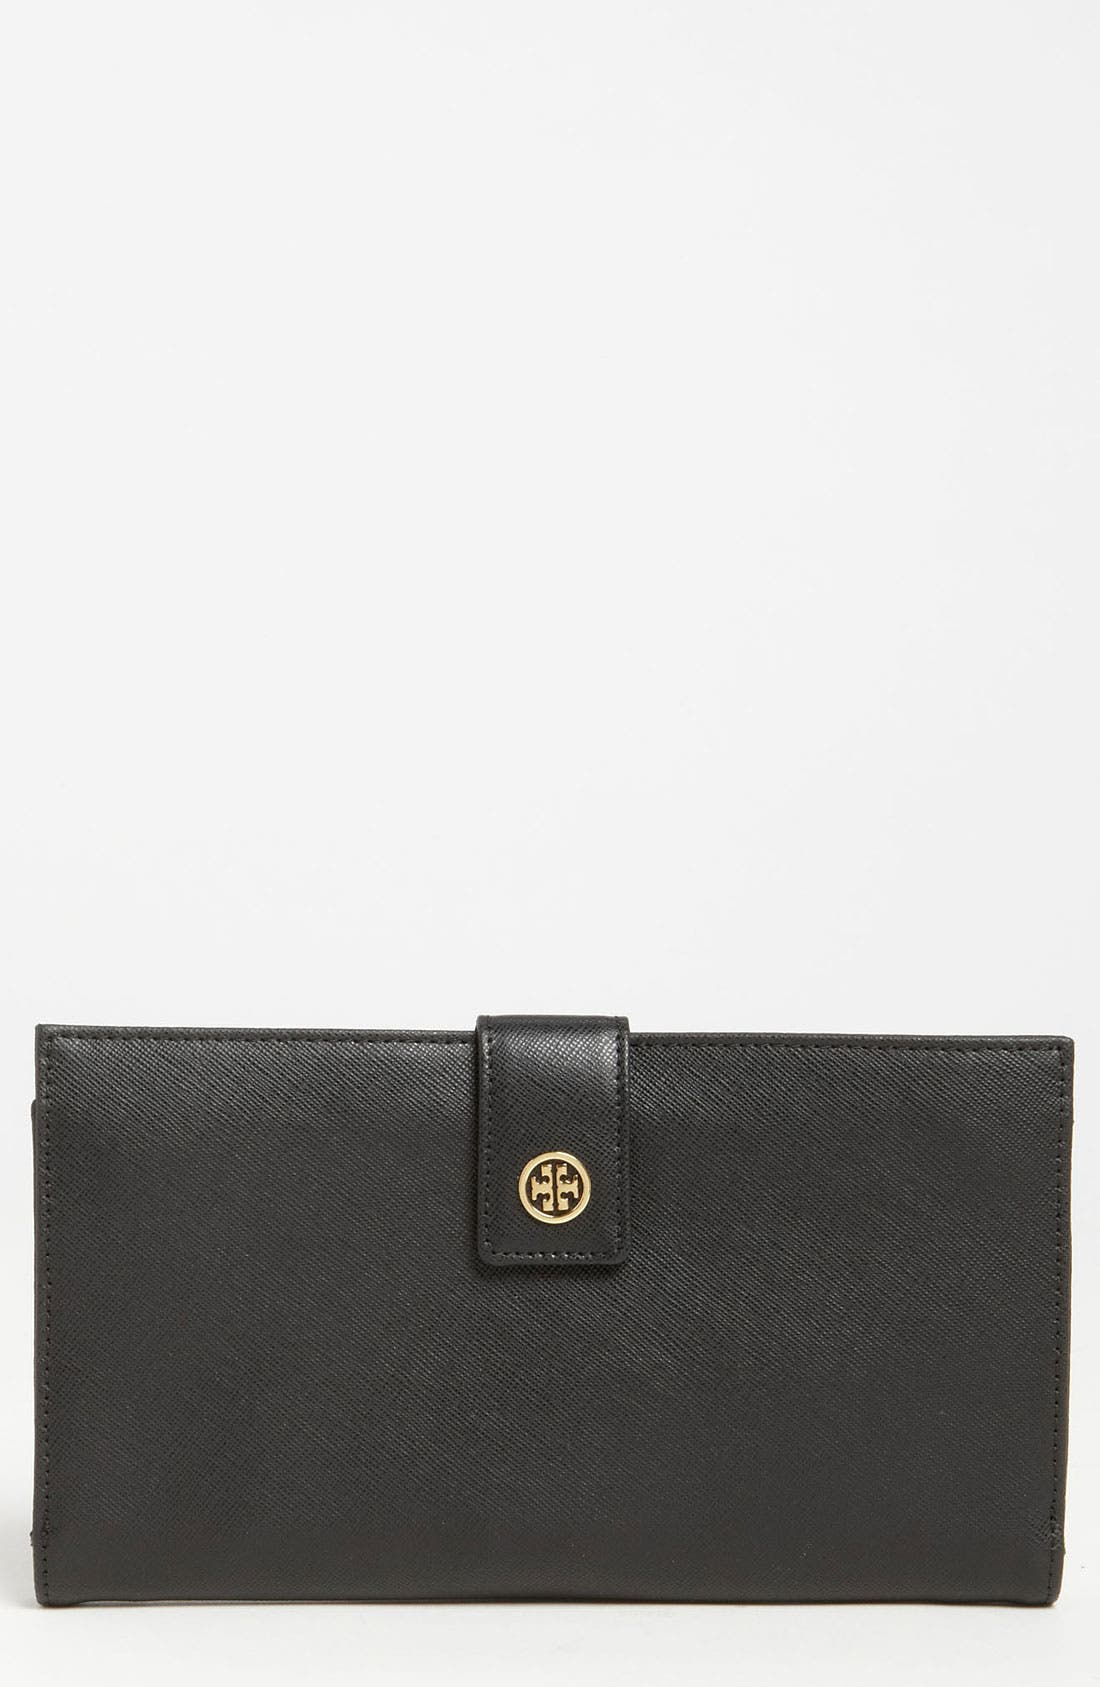 TORY BURCH 'Robinson' Oversized Travel Wallet, Main, color, 001